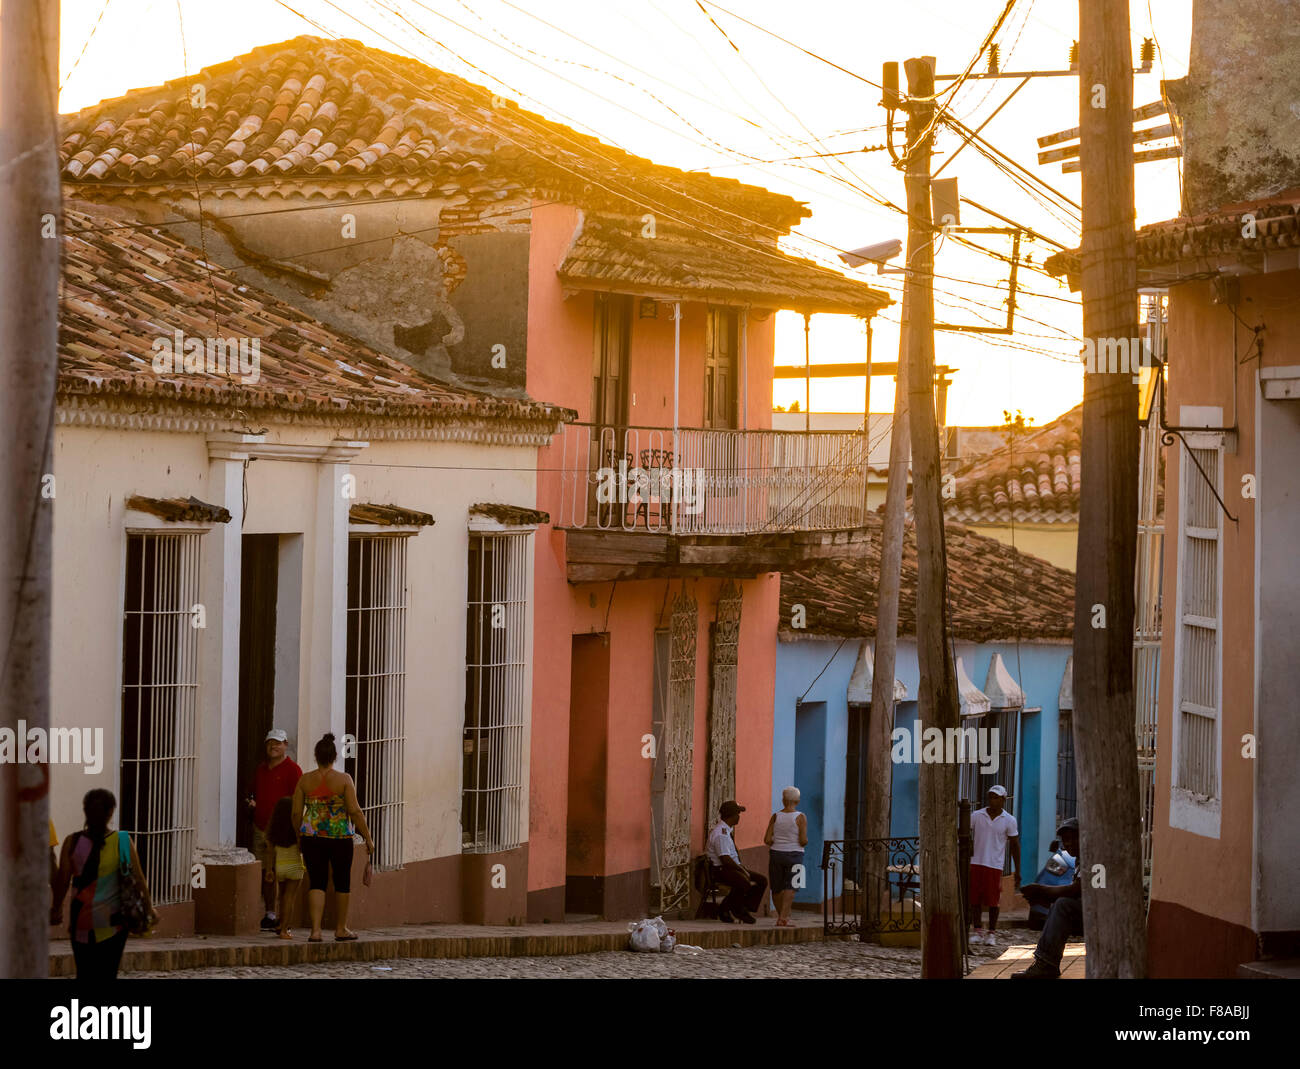 Trinidad, power lines, cable chaos chaotic electrical installations, street life, street scene with overhead electrical - Stock Image